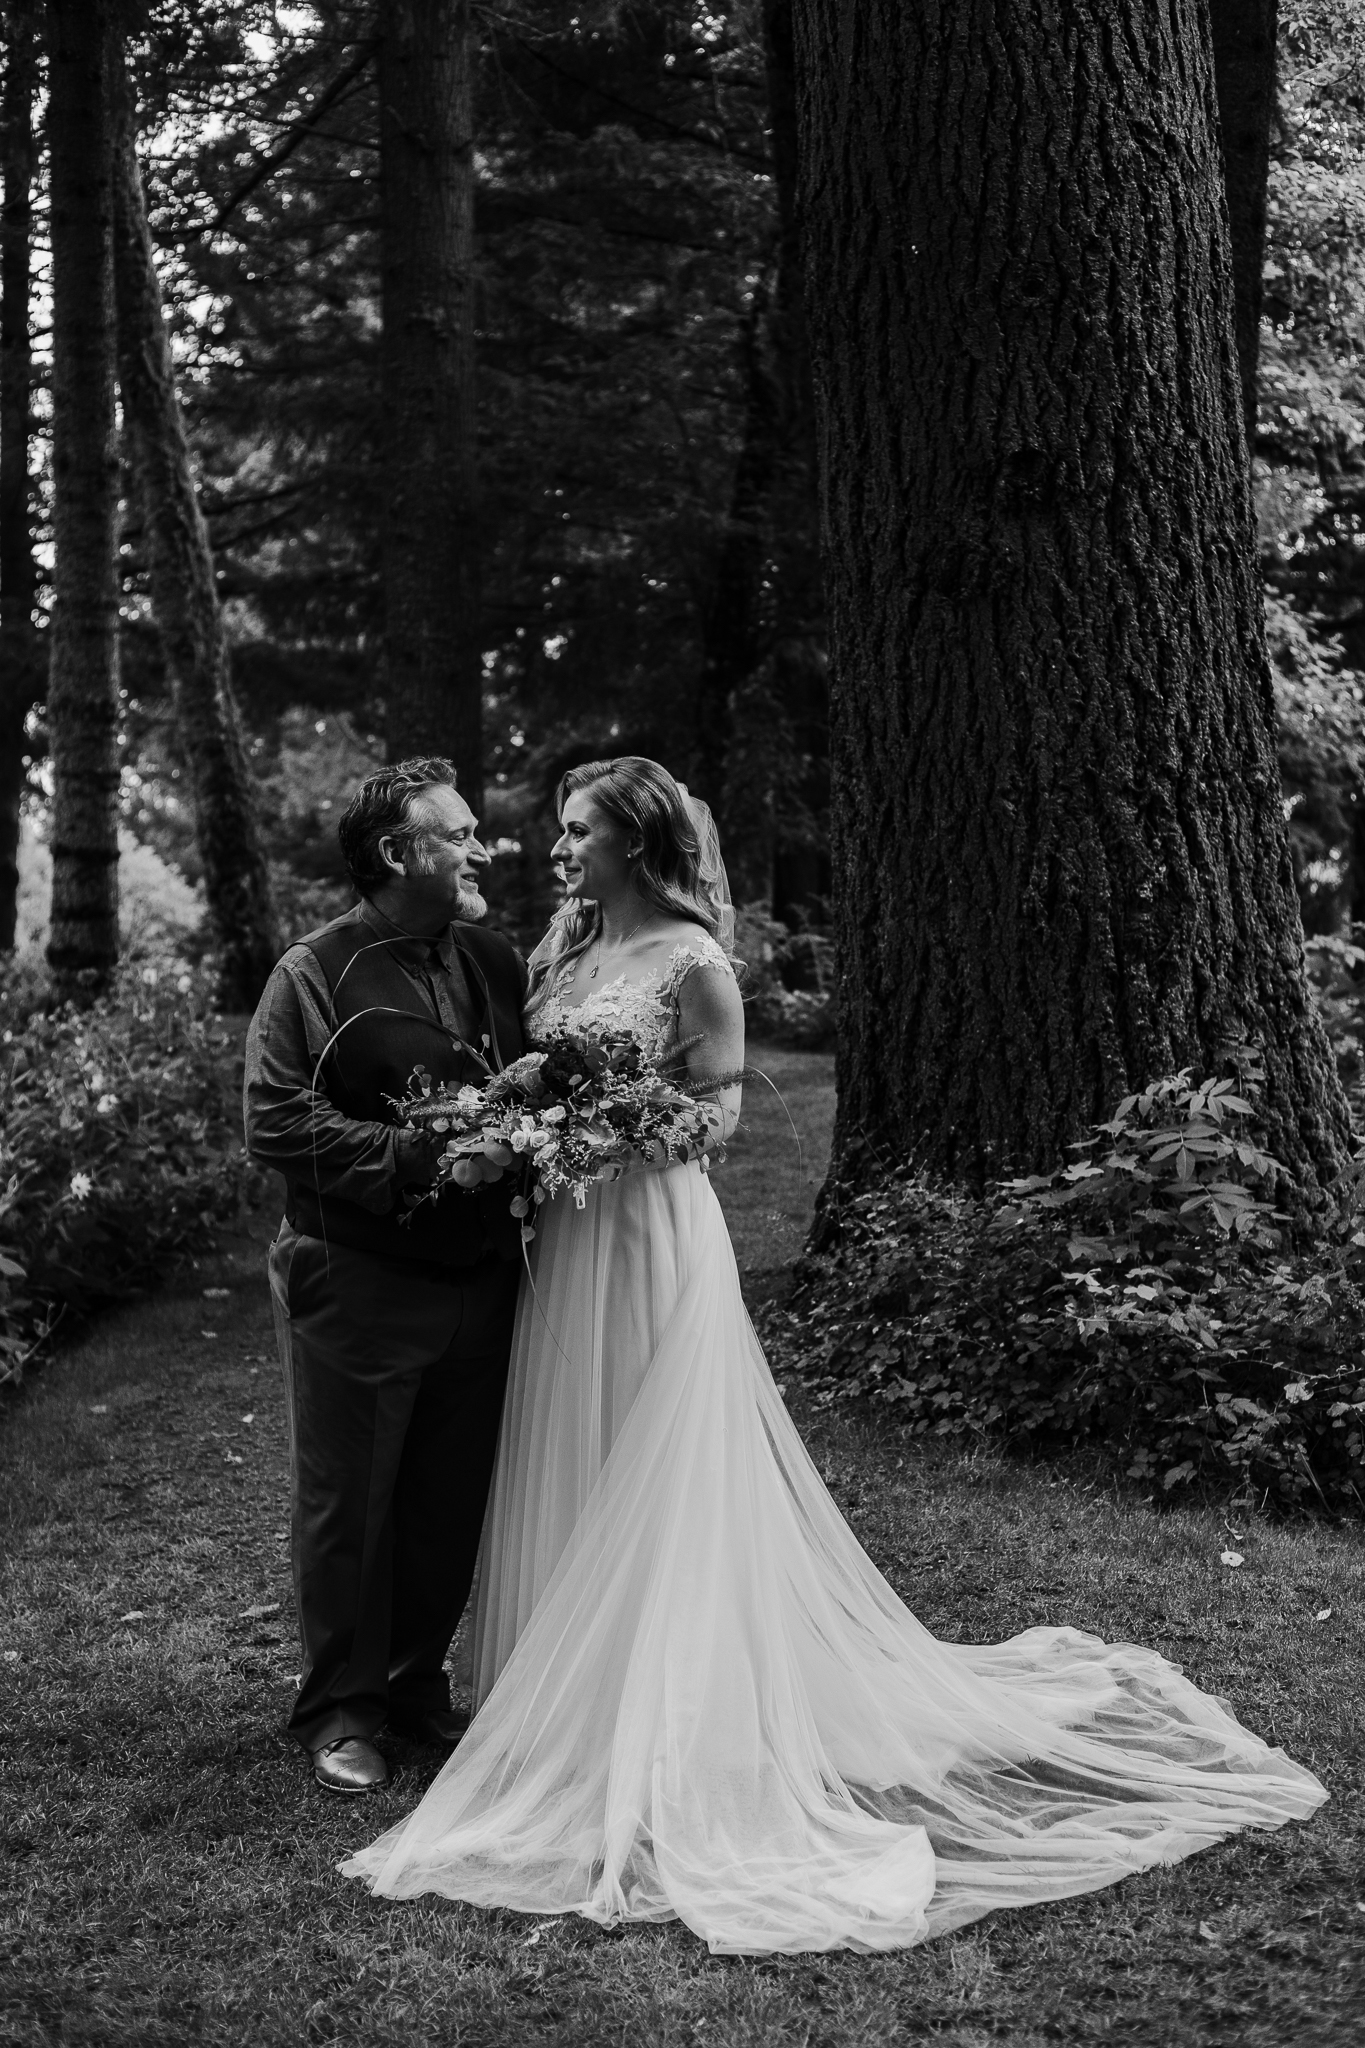 Alayna & Eric - wedding -  Bridal Veil Lakes, OR - Malina Rose Photography-98.jpg